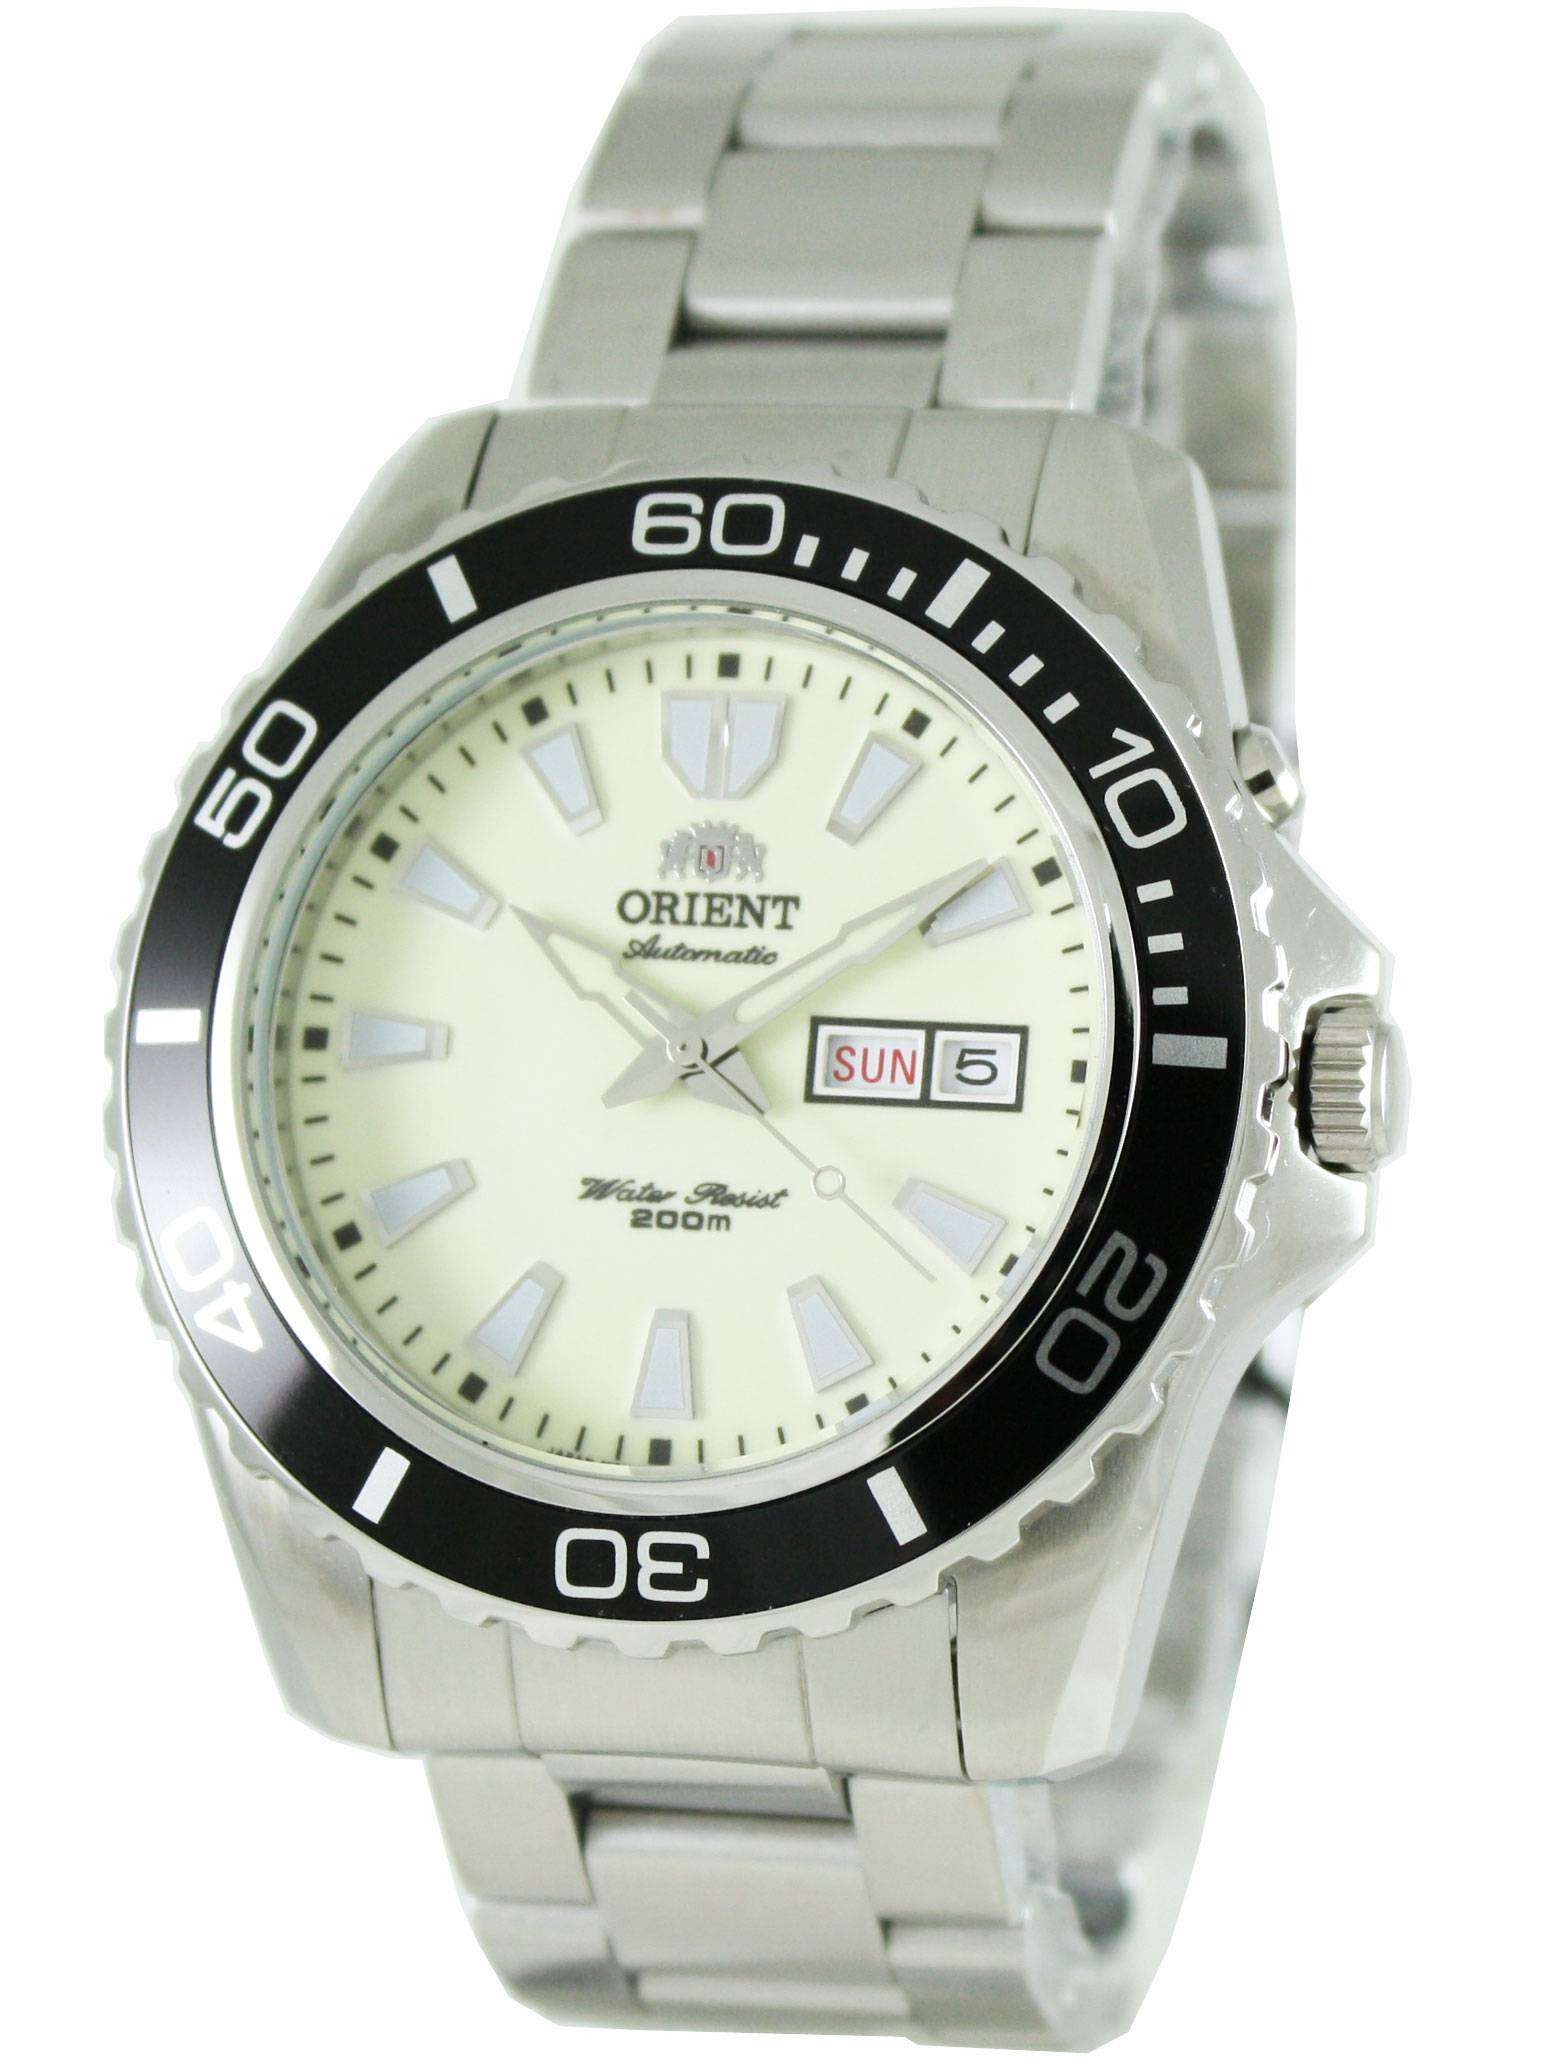 orient men Find all orient watch reviews, new orient watch releases, orient prices, original photos, news and discussion.